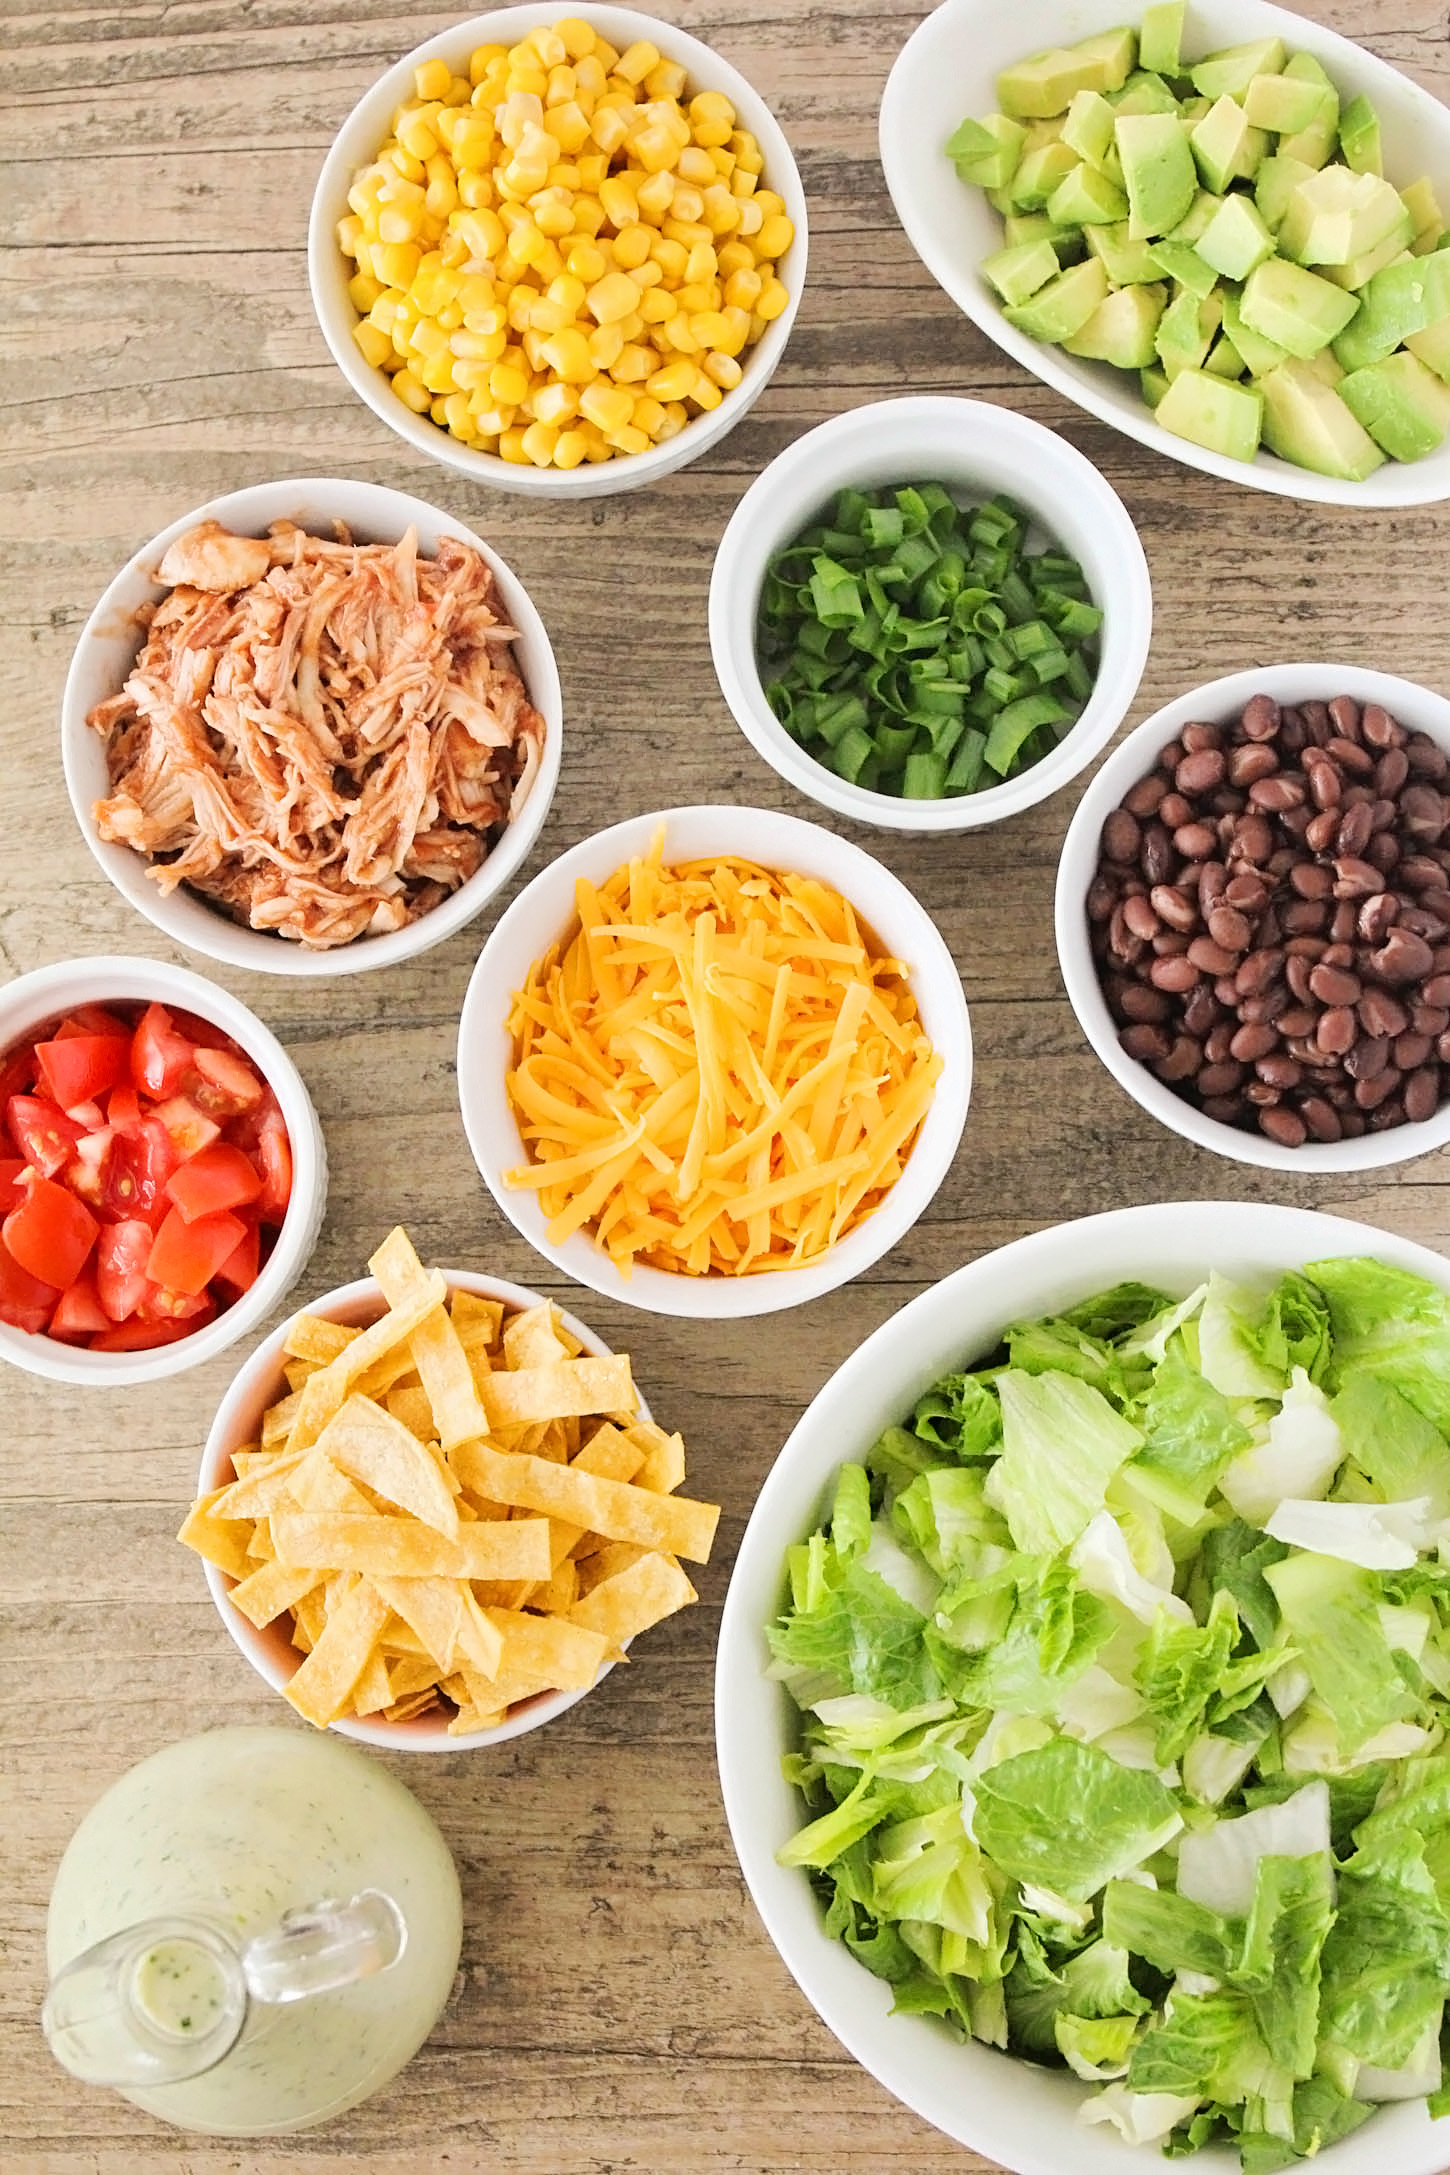 This Southwest BBQ Chicken Salad with Creamy Lime-Cilantro Dressing is a quick dinner option that's full of healthy ingredients and so packed with flavor your family will asking for it again and again!